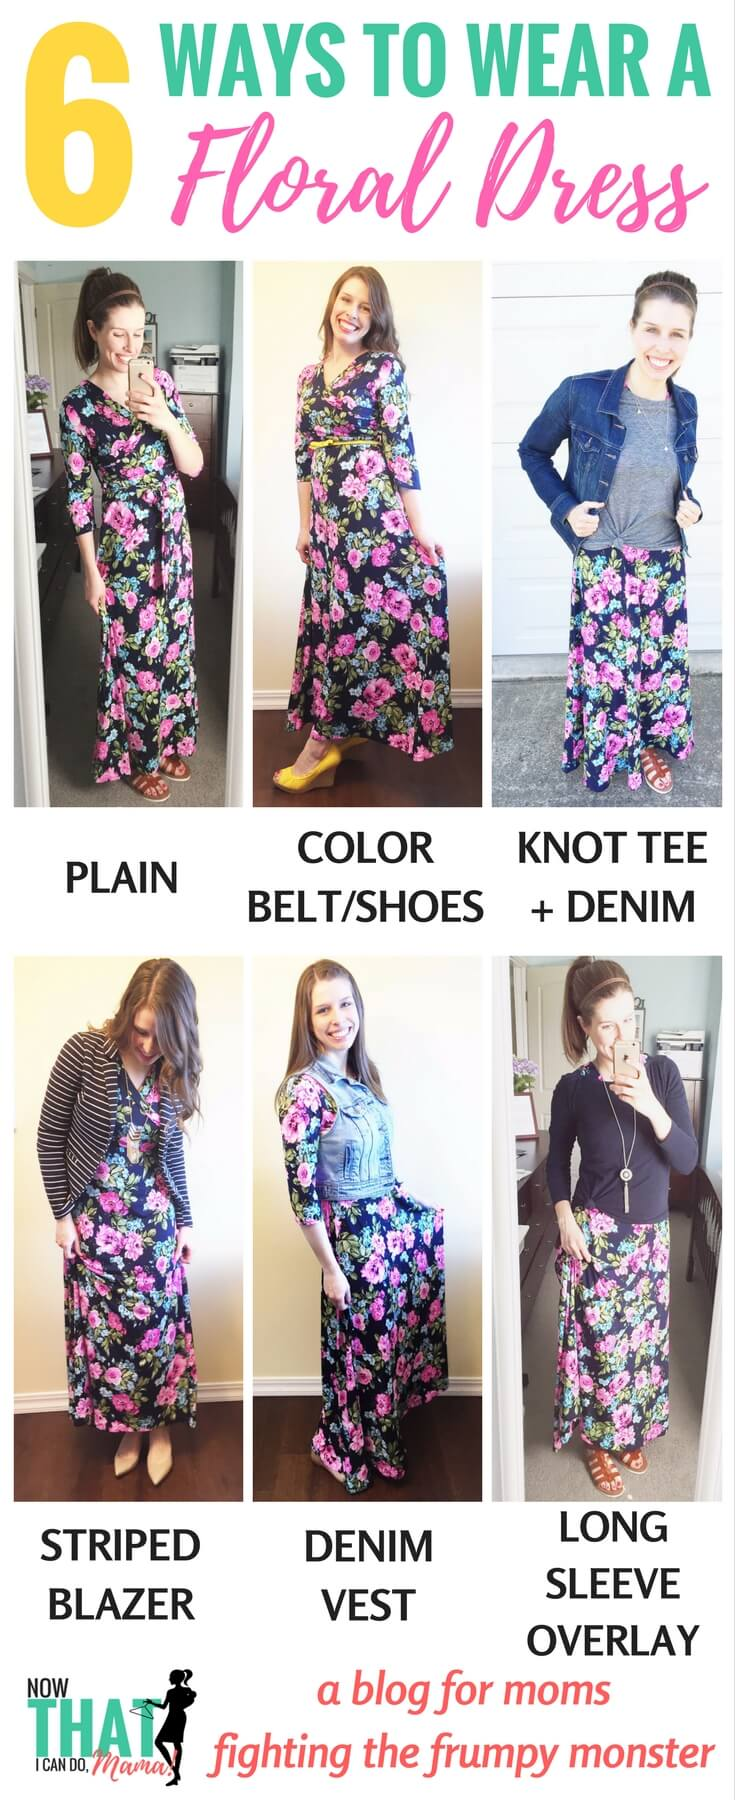 The floral trend can be dressed up or down for mom life. Here are a handful of ways to wear a floral maxi dress. Click through for details and link to this dress.